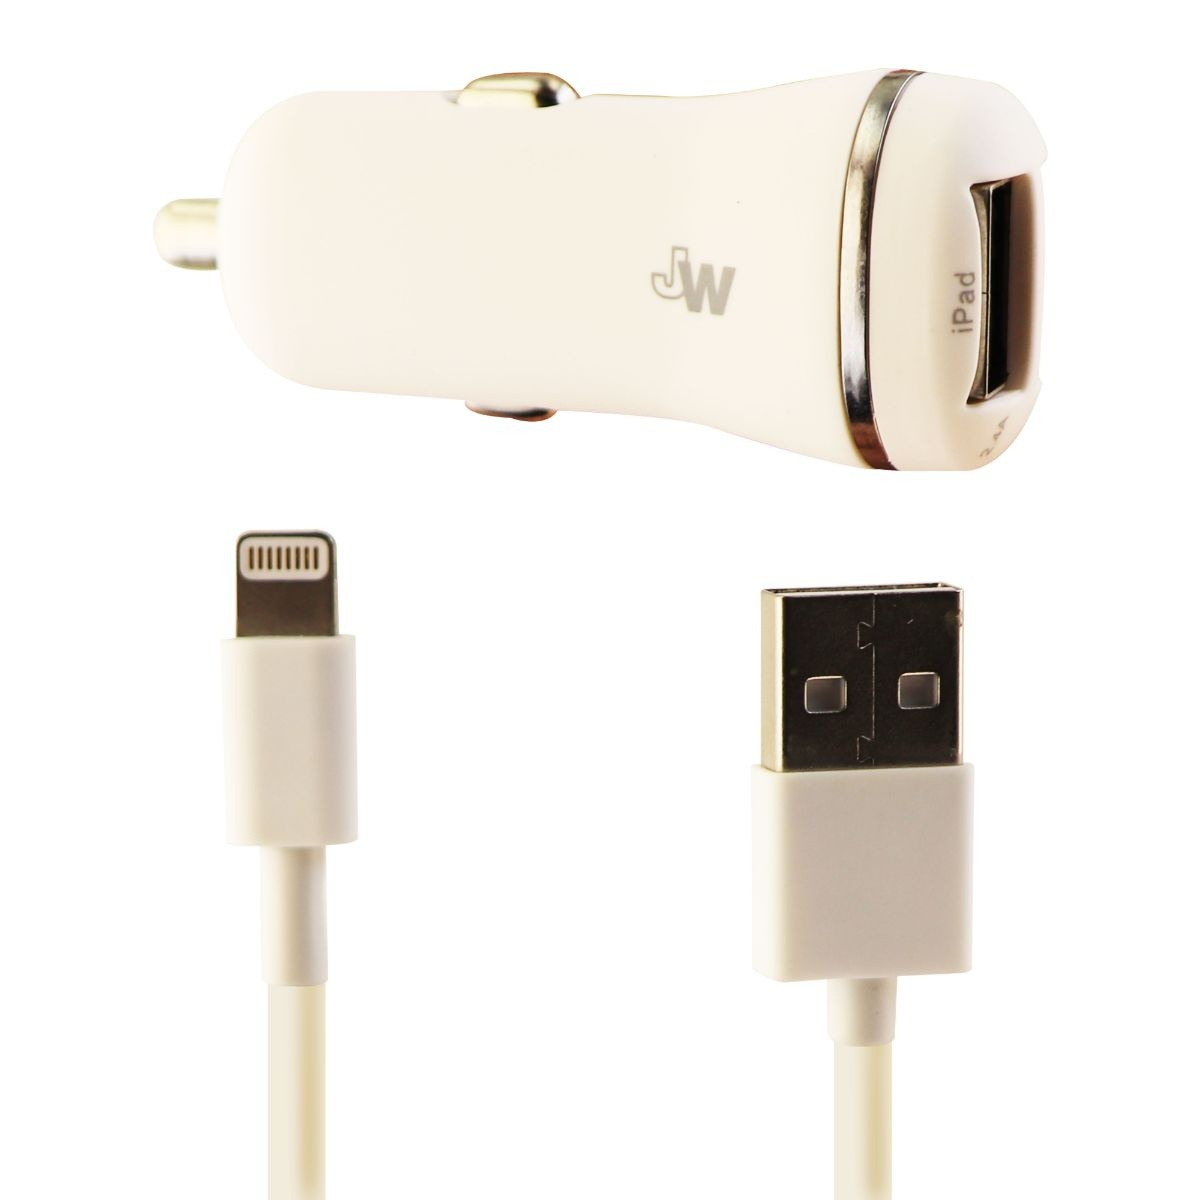 Just Wireless Dual USB Car Charger Adapter and 5 ft Lightning-USB Cable - White